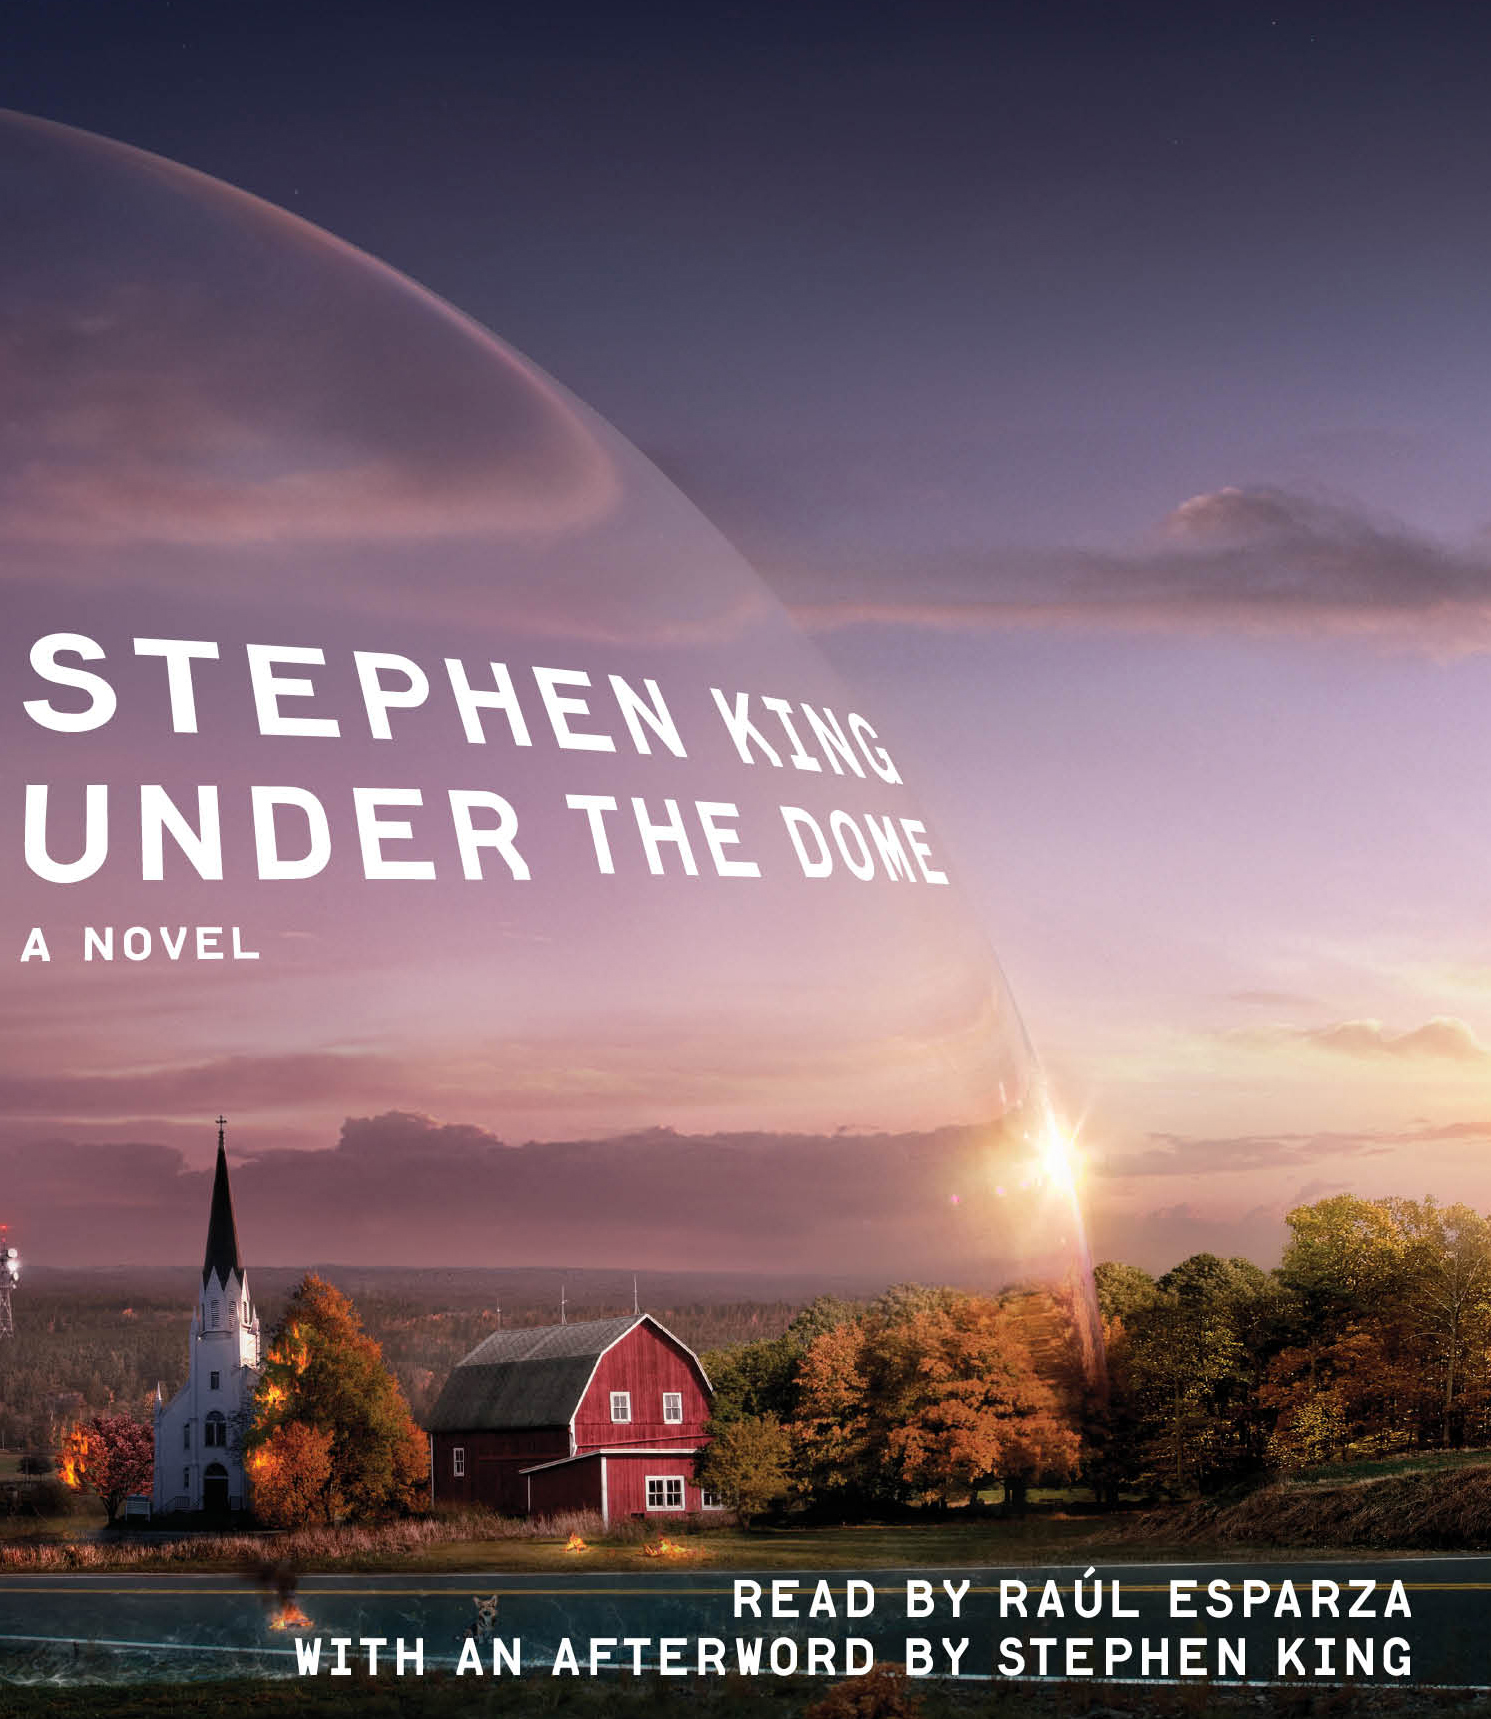 Under the dome 9780743597319 hr